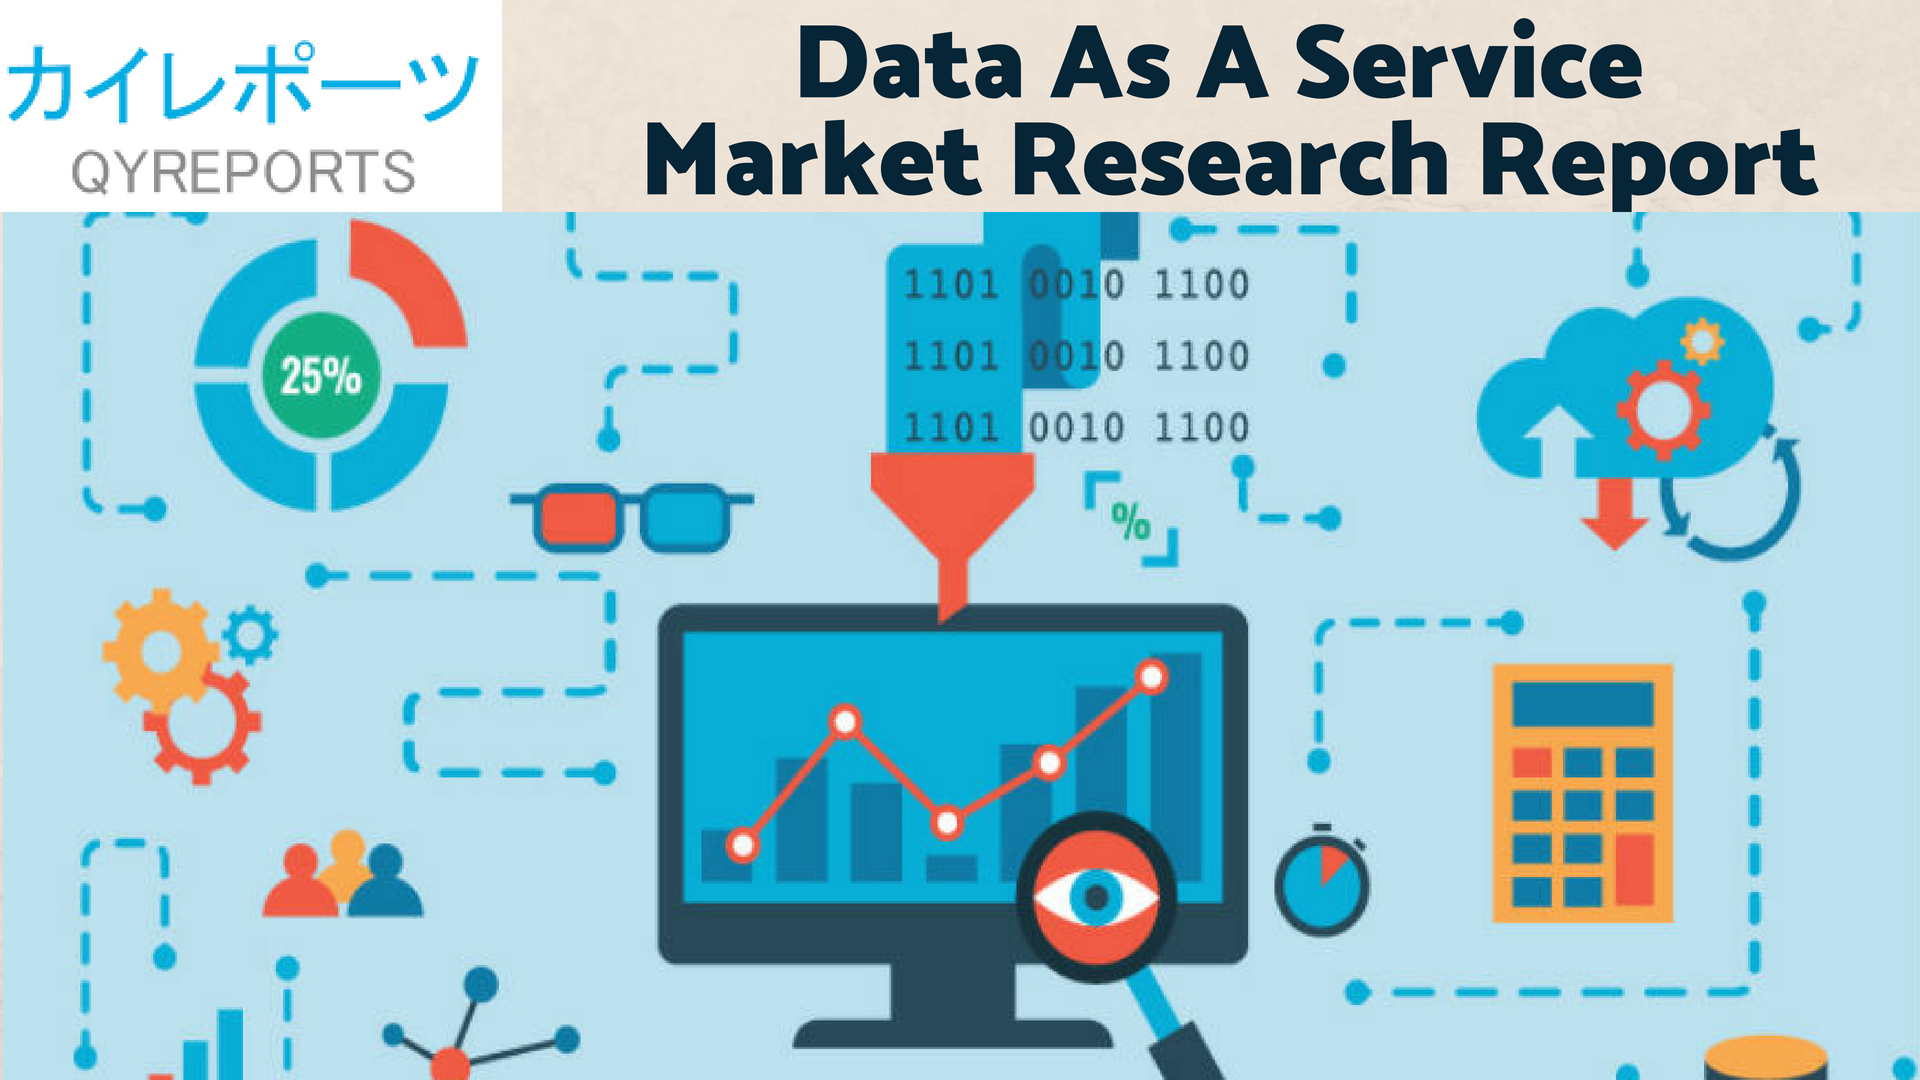 New Study Focusing on Data As A Service Market CAGR of +43% by 2025: Emerging- And High-Growth Segments, Segmentation, Regional Outlook, focusing by top key vendors like Microsoft, Google, IBM, Oracle 1